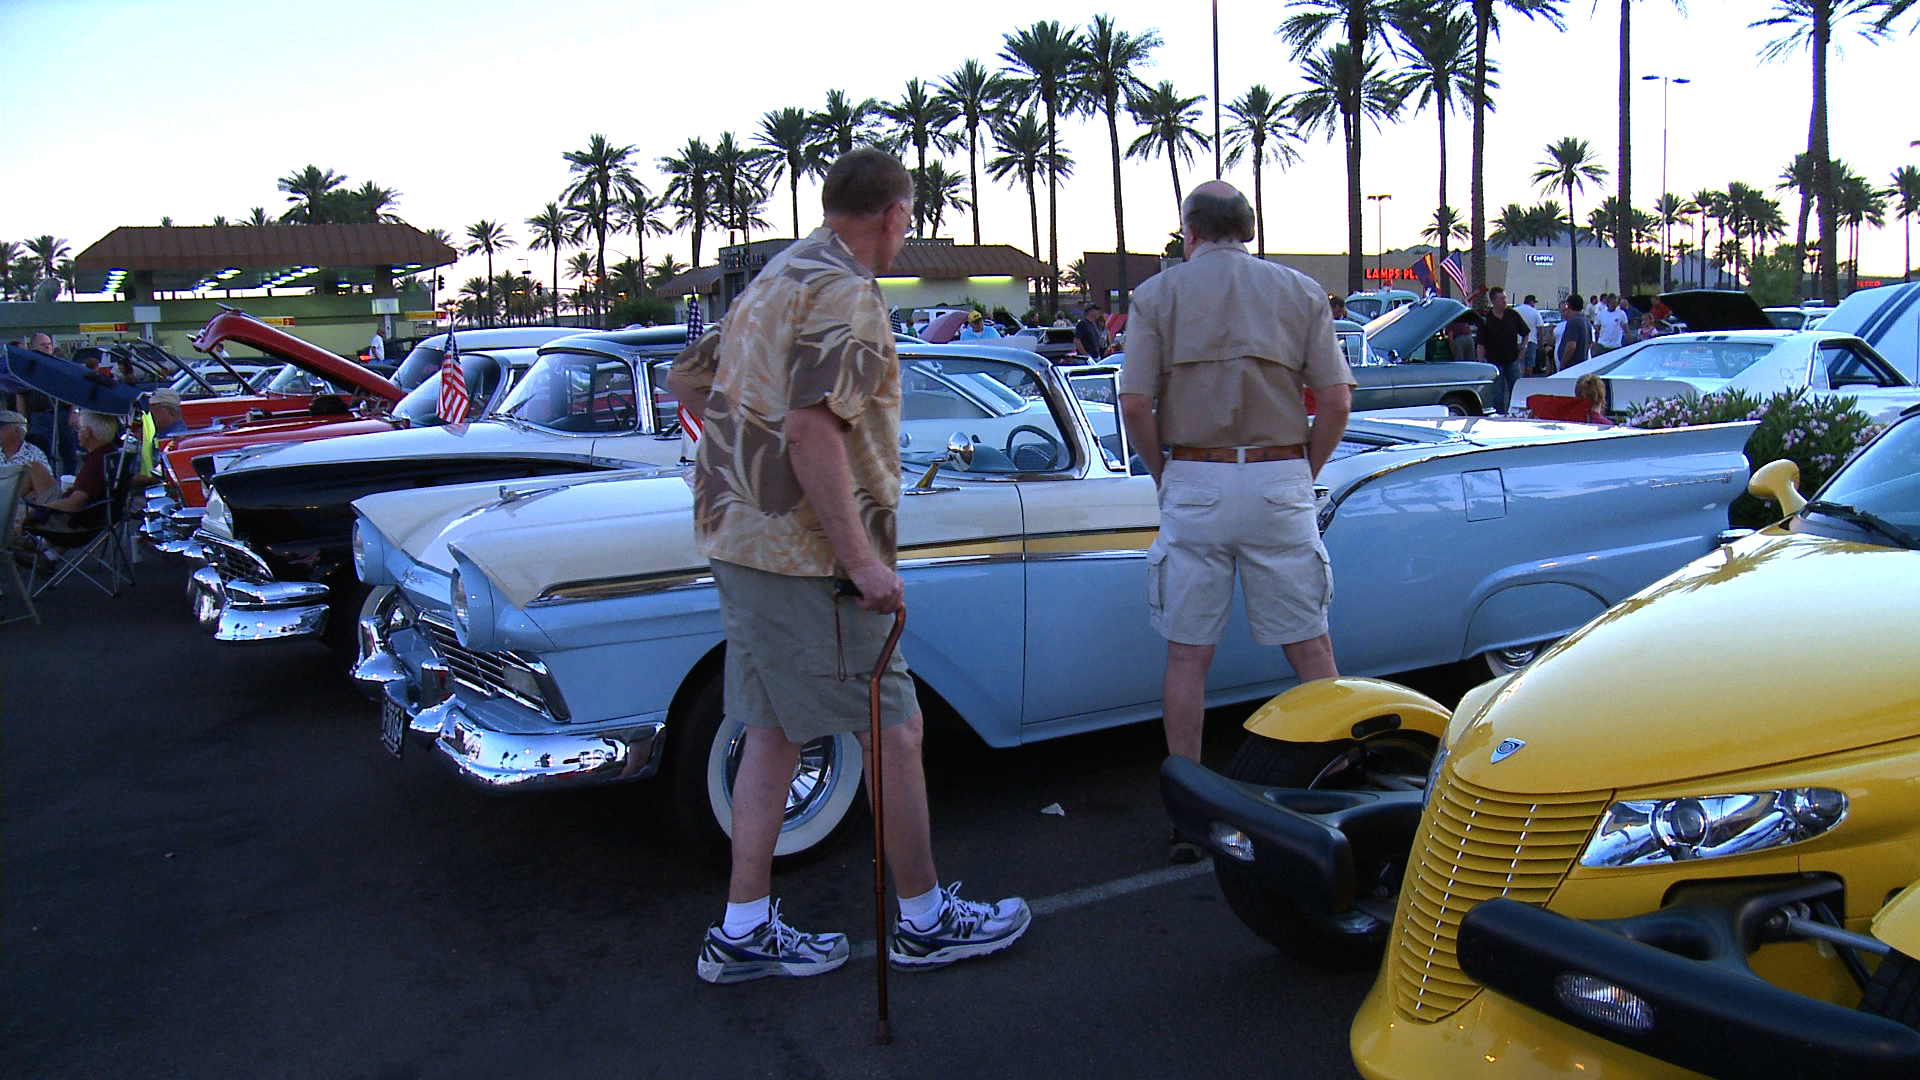 The Rock 'n' Roll Car Show at the Pavilions   Tourism for the Salt ...